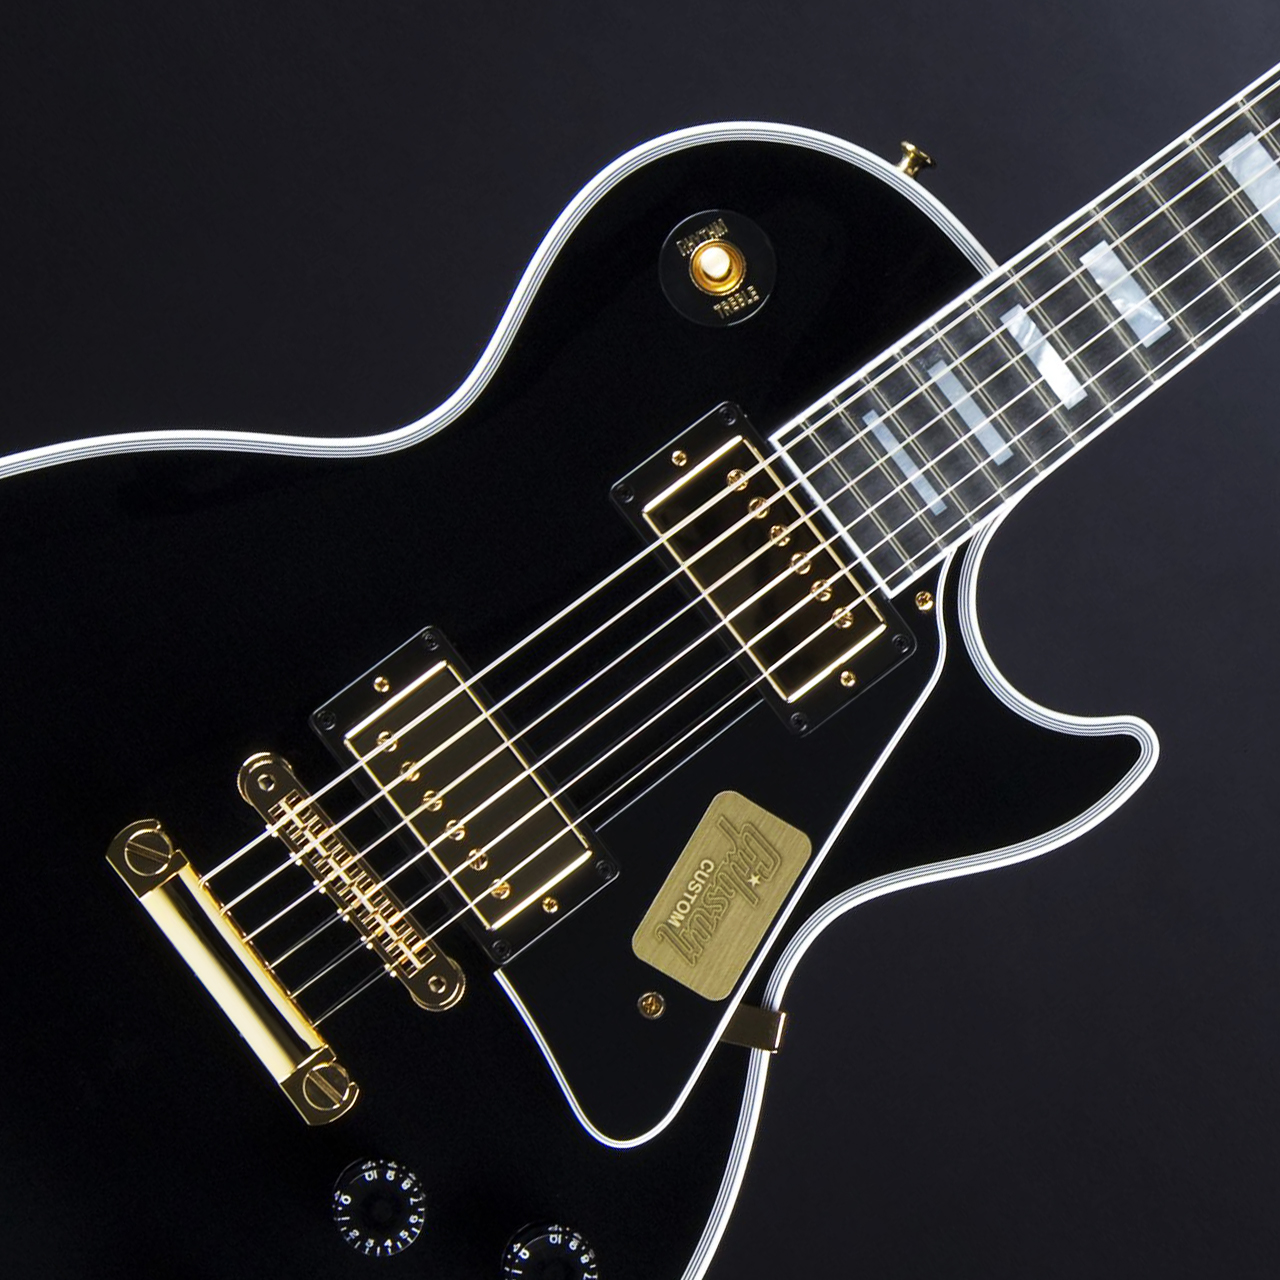 Gibson Les Paul Custom Ebony Pickups